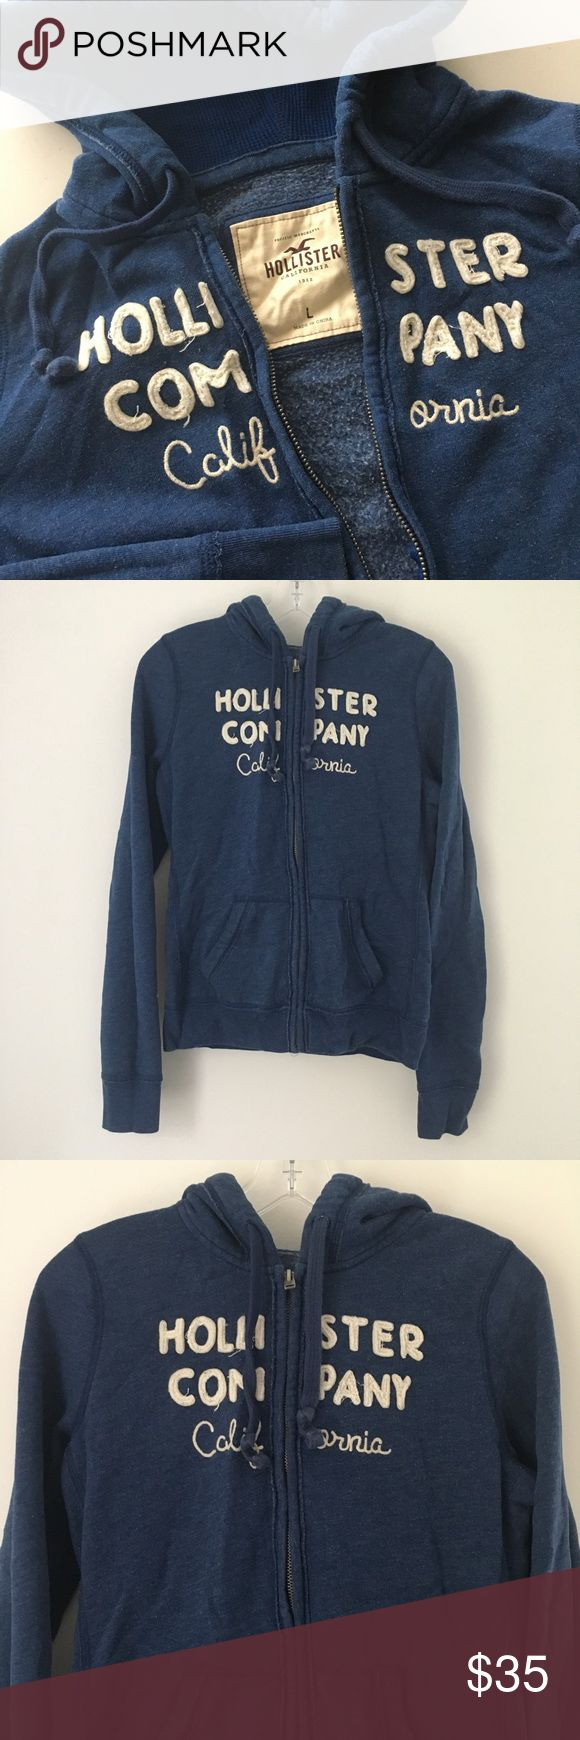 "HOLLISTER SOFT FLEECE JACKET SWEATER SWEATSHIRT !! Awesome Dark Navy Blue / Ivory Off-white Embroidered Patch Hollister California Distressed Full Zip Up Hoodie Hooded Sweater Sweatshirt Jacket Top SOFT Fleece RARE || Brand new || Never used || NO major flaws. INTENTIONALLY distressed (with pilling) + meant to look ""worn-in"". 